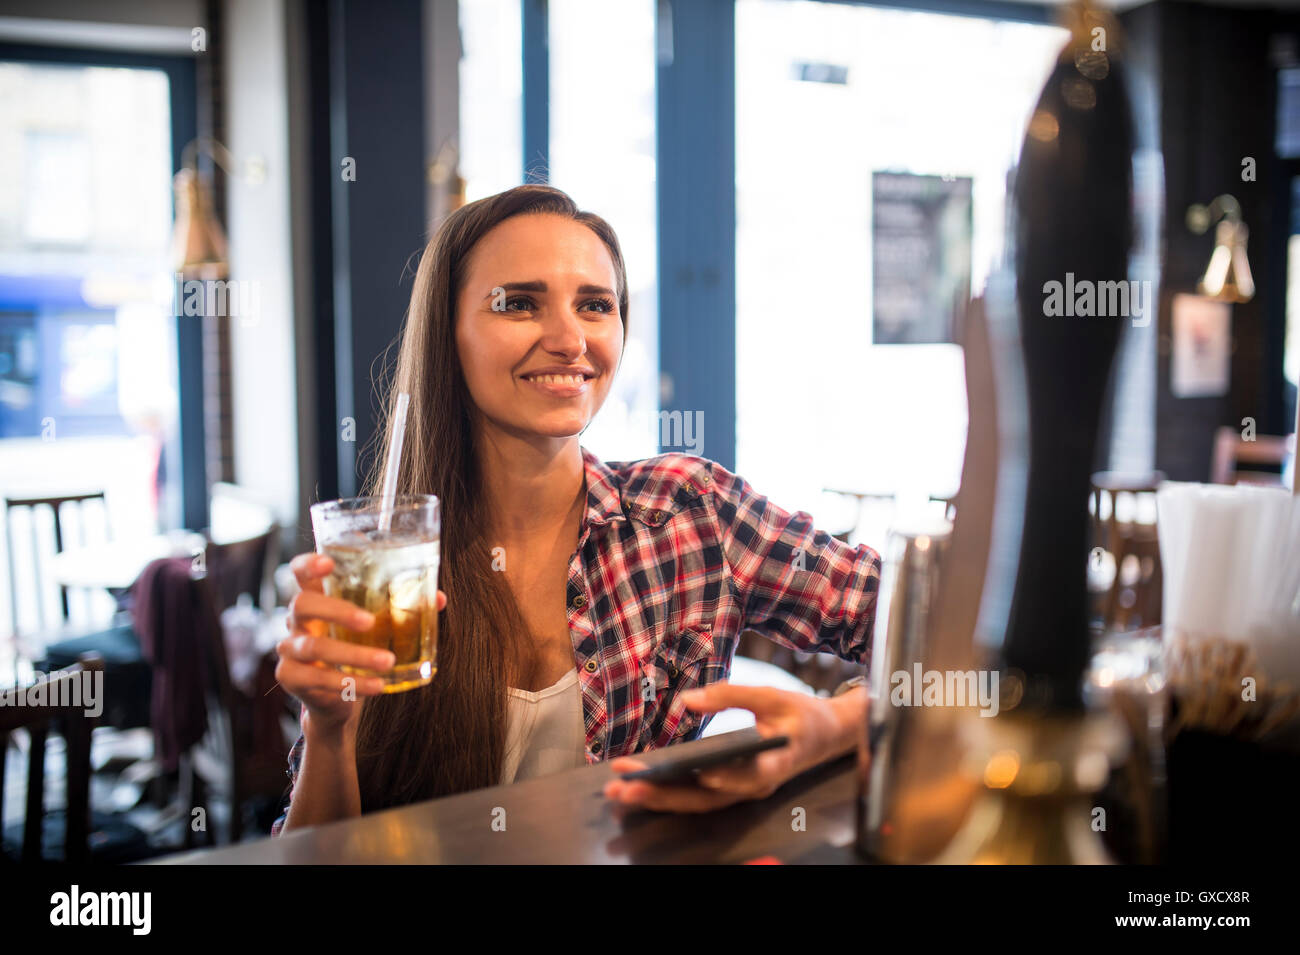 Young woman with smartphone at city bar - Stock Image